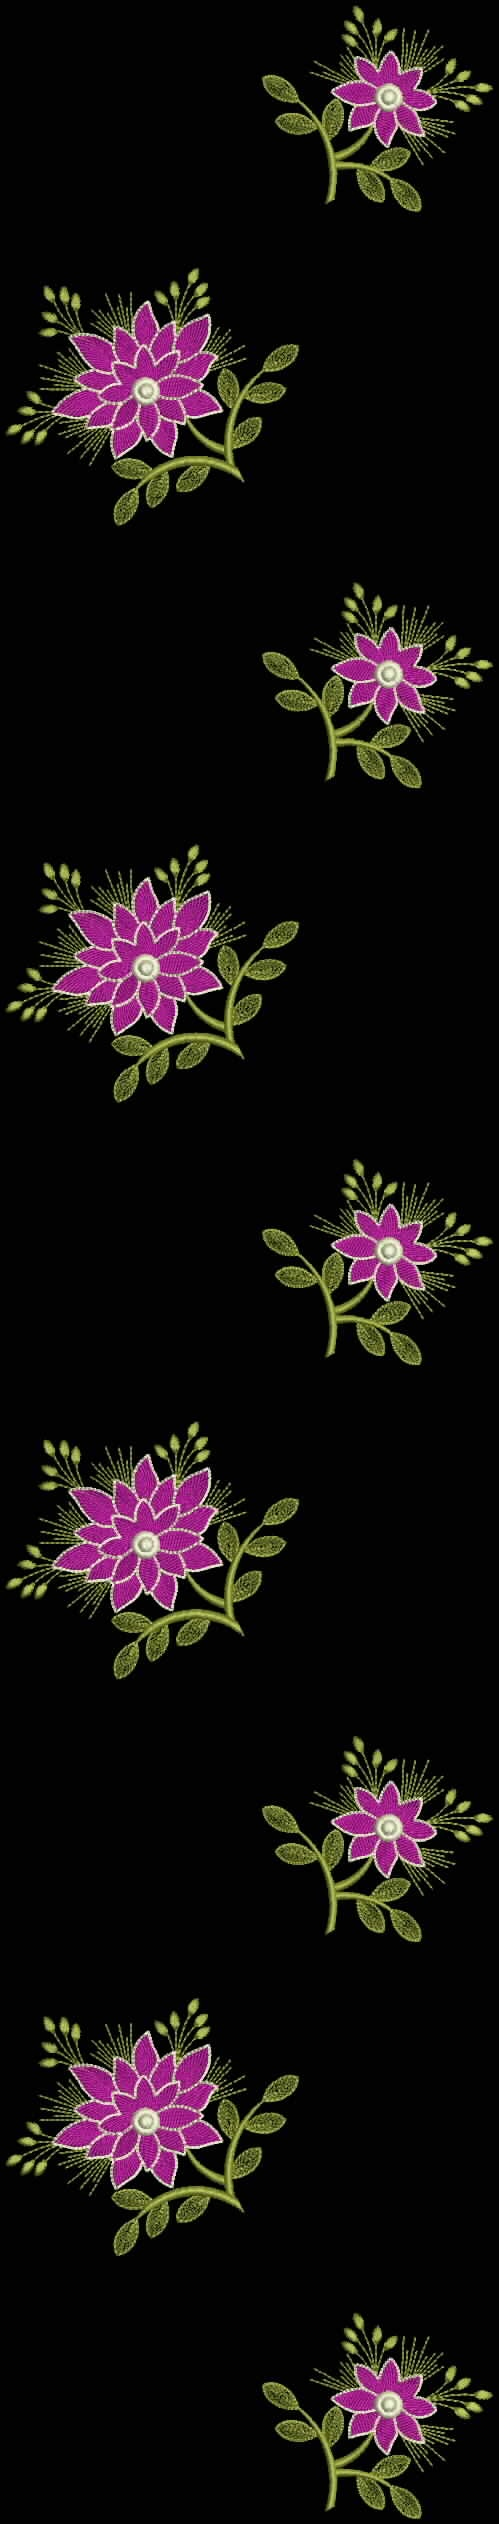 Latest Embroidery Designs For Sale, If U Want Embroidery Designs Plz Contact (Khalid Mahmood, +92-300-9406667)  www.embroiderydesignss.blogspot.com  Design# Goonj16